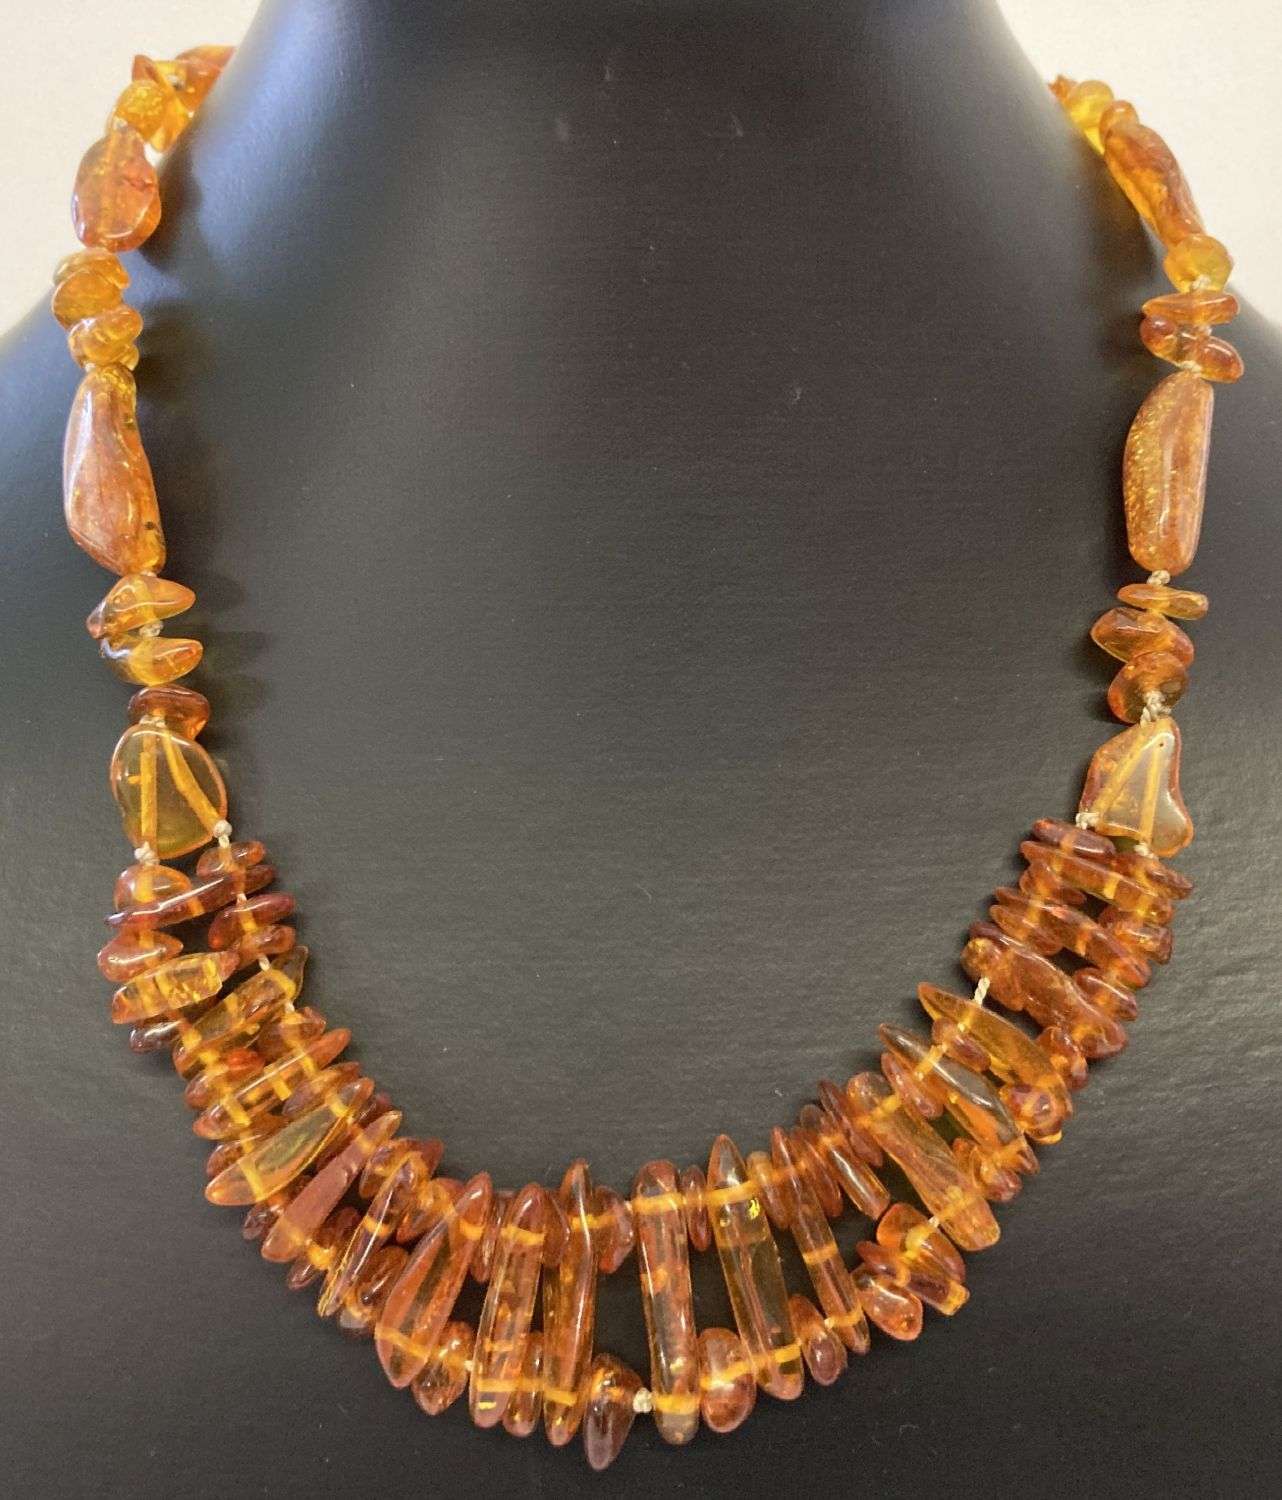 An 18 inch amber necklace made from varying sized pieces of amber, with screw barrel clasp.